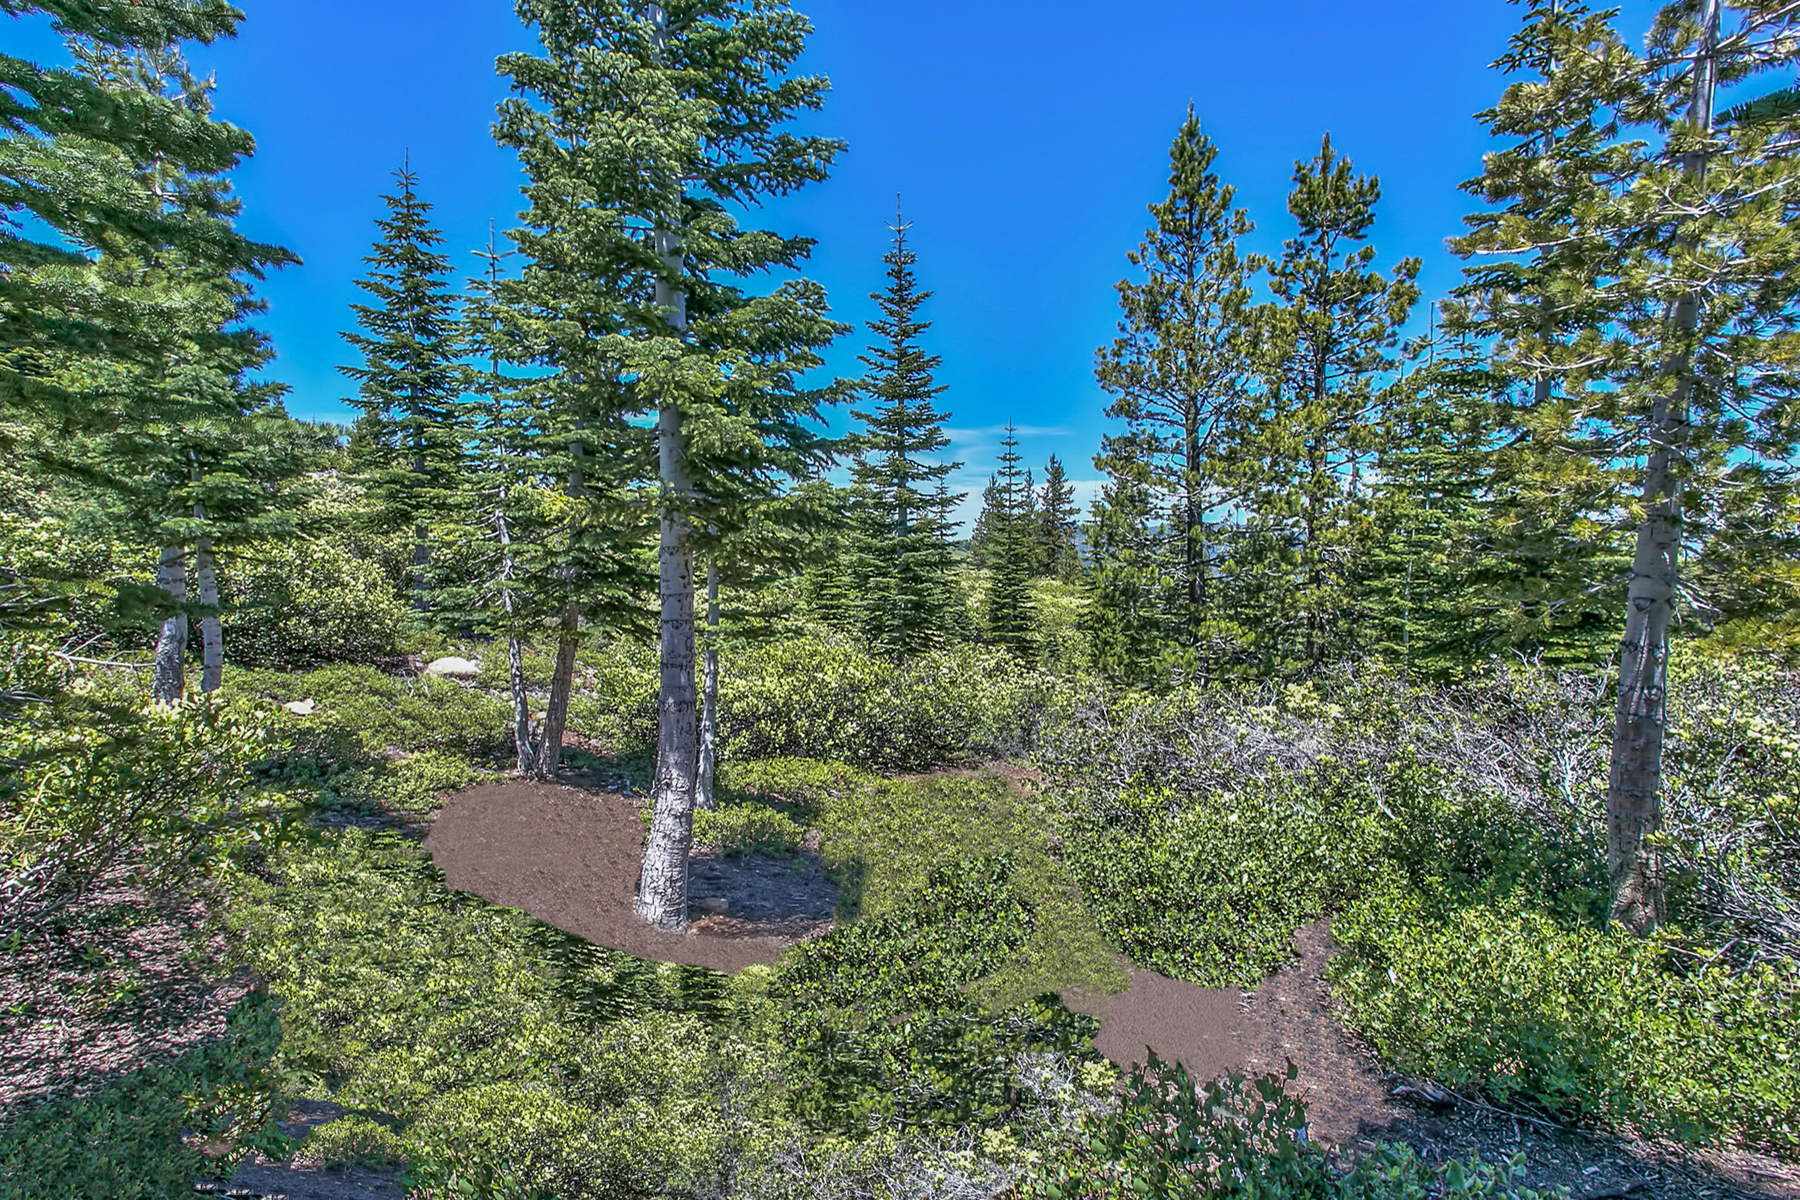 Additional photo for property listing at 15092 Skislope 15092 Skislope Way Truckee, California 96161 Estados Unidos